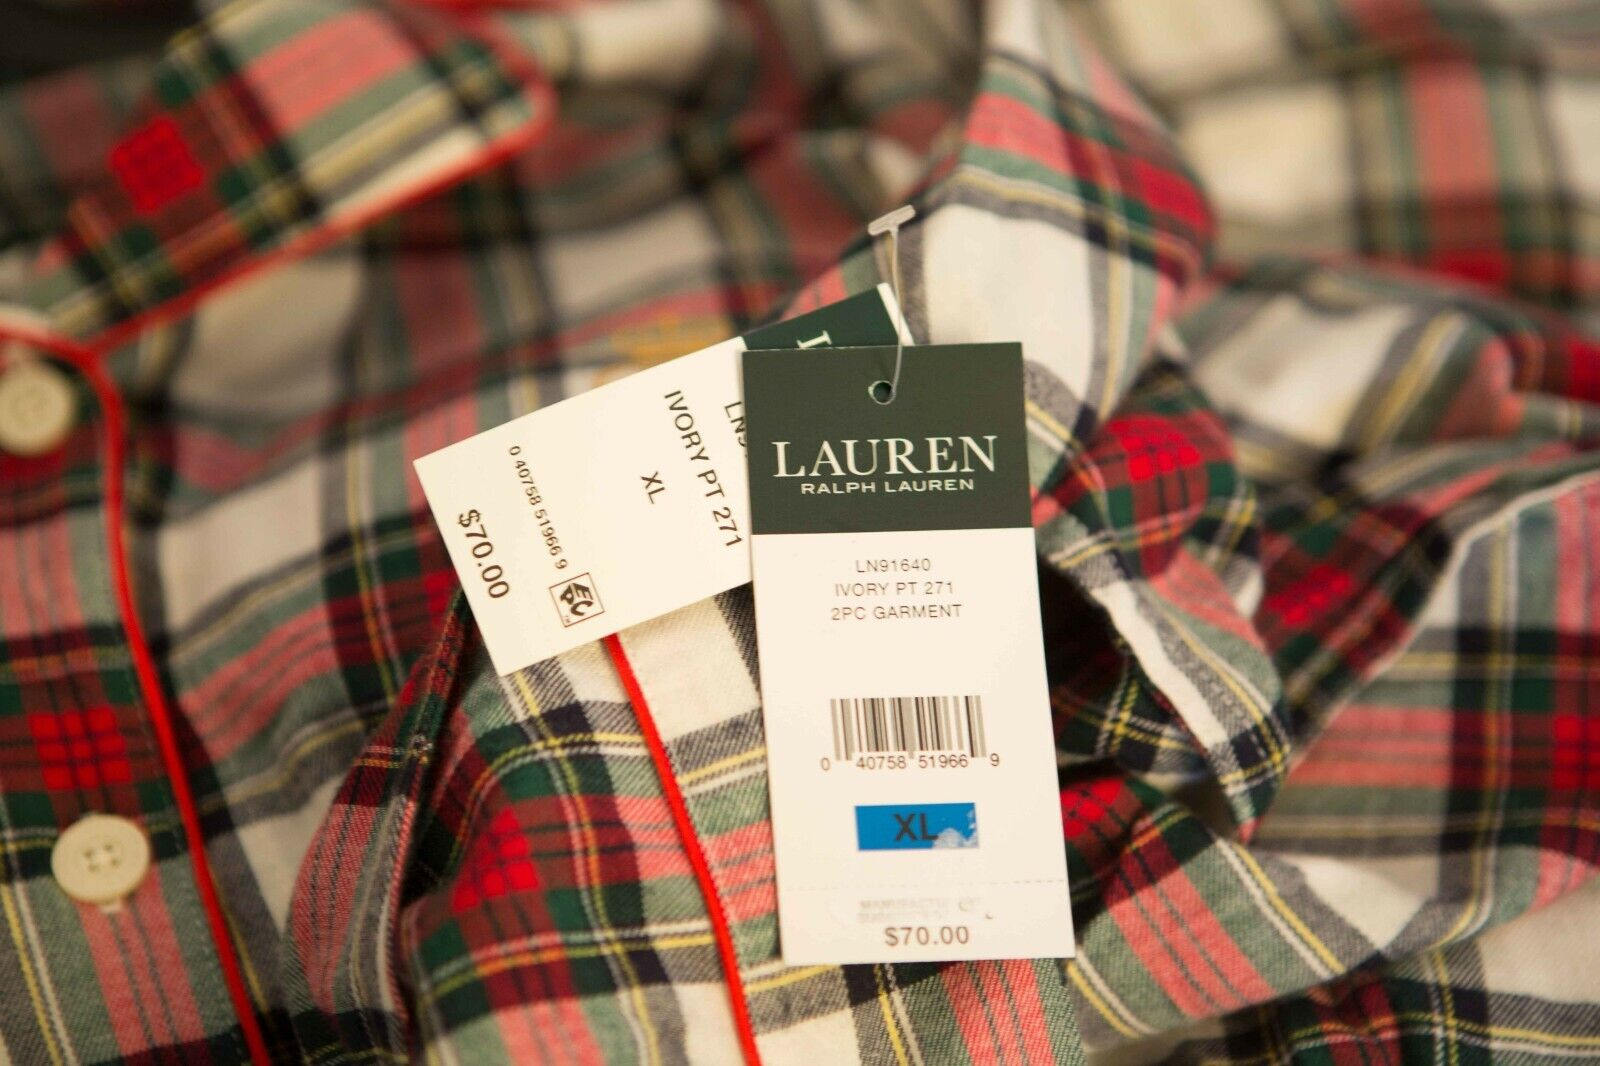 30000edee9c7 ... Lauren Ralph Lauren Sleepwear Brushed Twill Long Sleeve Sleeve Sleeve  Notch Collar PJ Set 900922